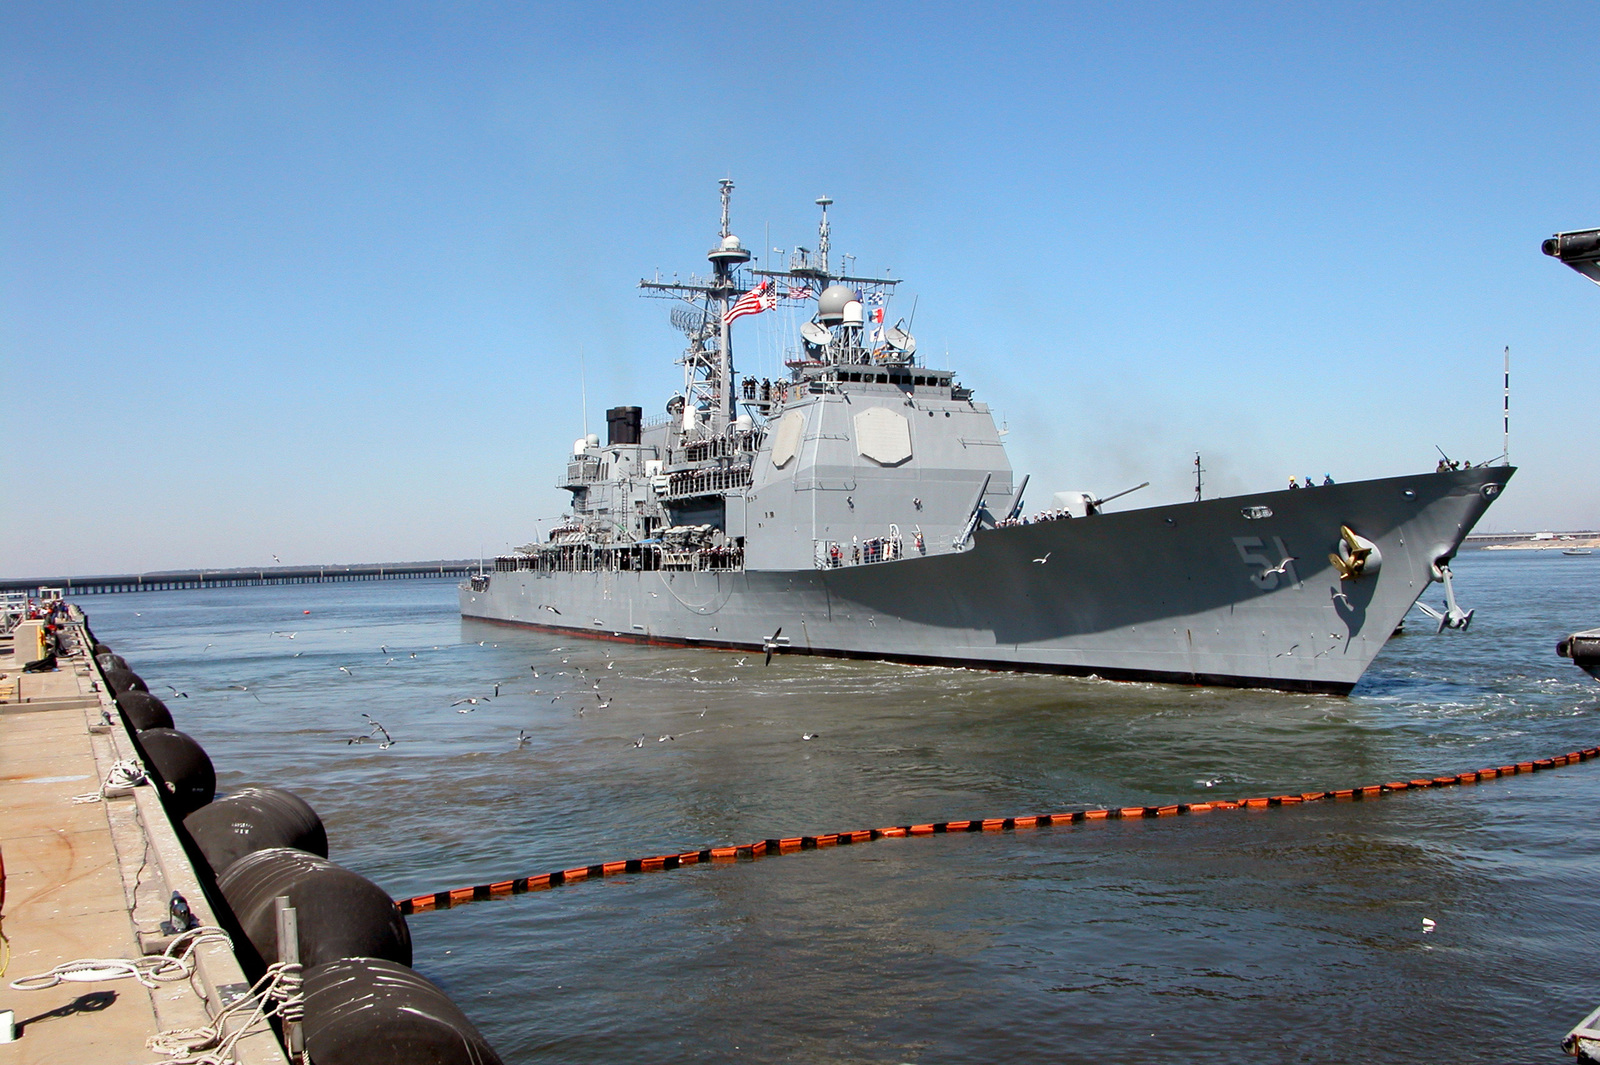 A starboard bow view of the US Navy (USN) TICONDEROGA CLASS: Guided Missile Cruiser (Aegis), USS THOMAS S. GATES (CG 51) being assisted by a commercial tugboat, as the ship gets underway from its homeport at Naval Station Pascagoula, Mississippi (MS)